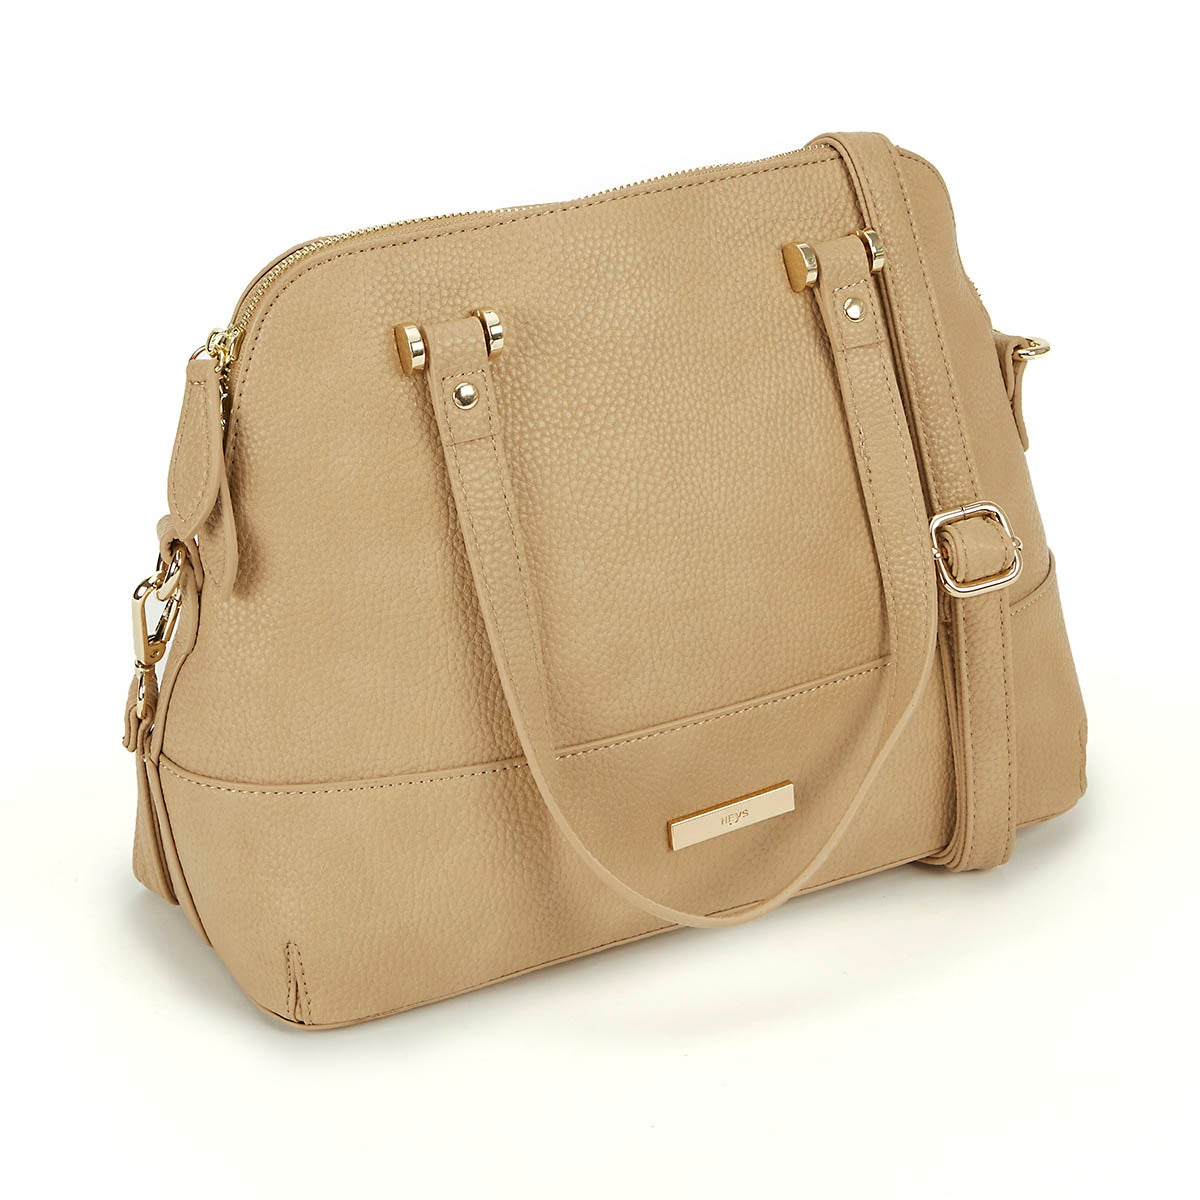 Lds Everyday Essentials tpe dome satchel